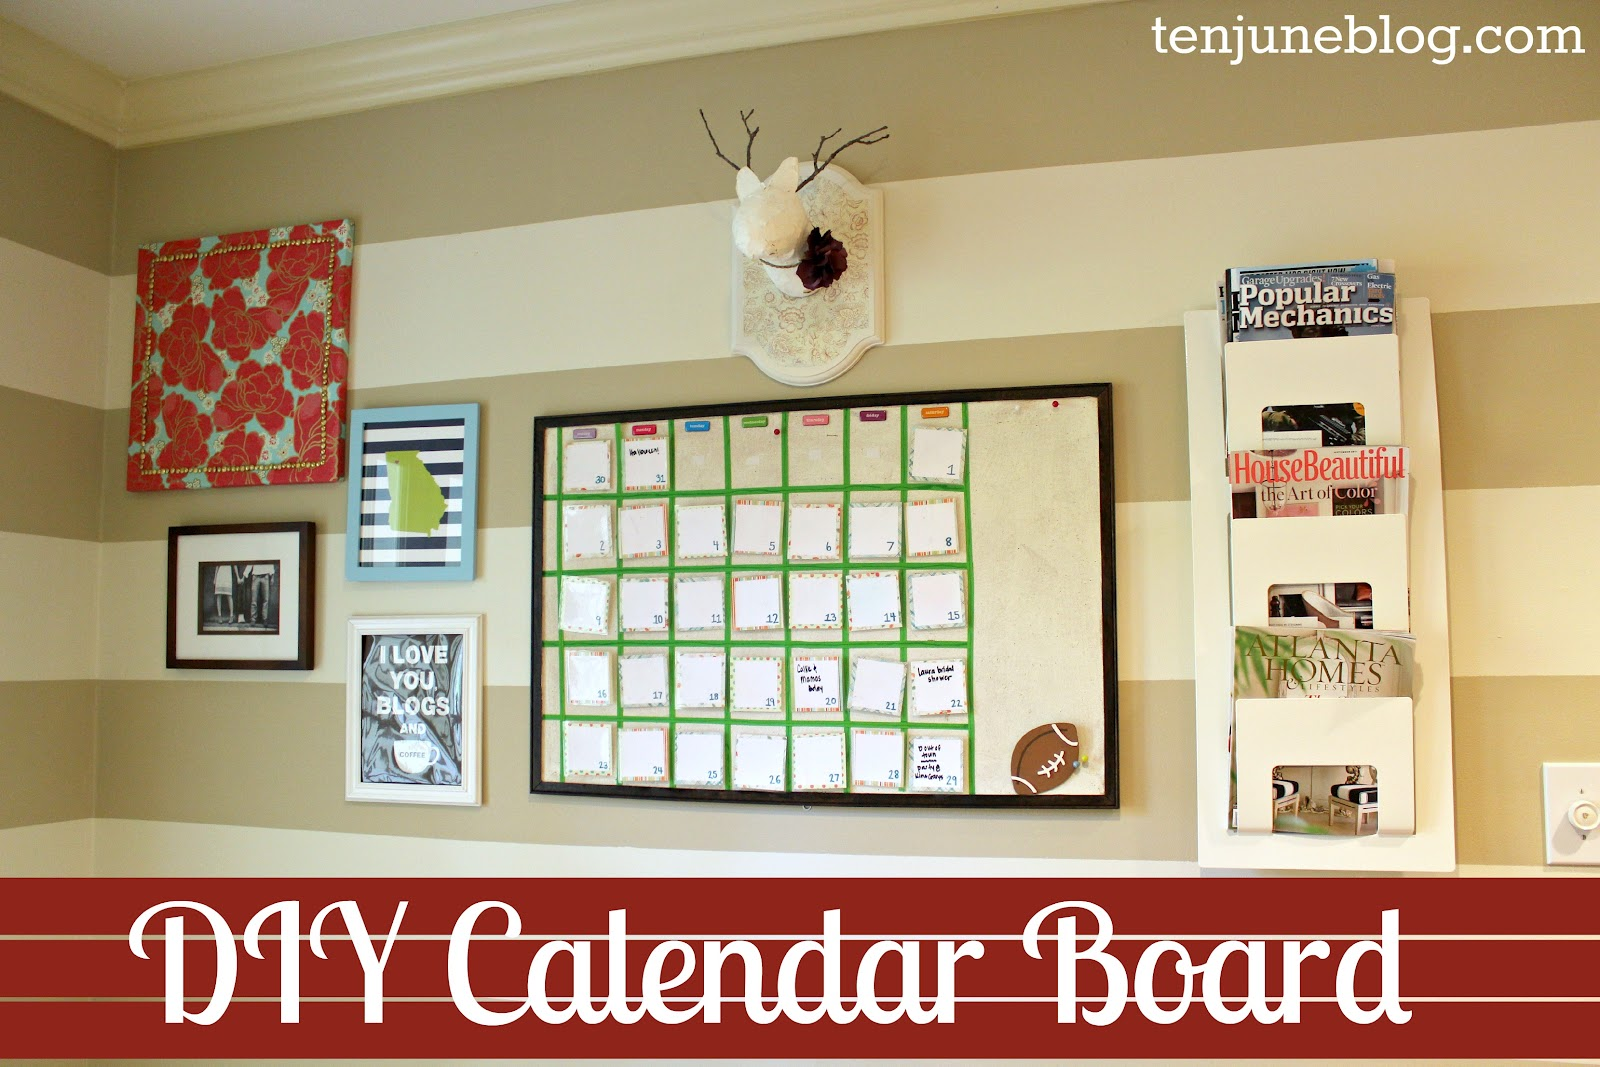 Diy Calendar Board : Ten june diy erasable calendar board